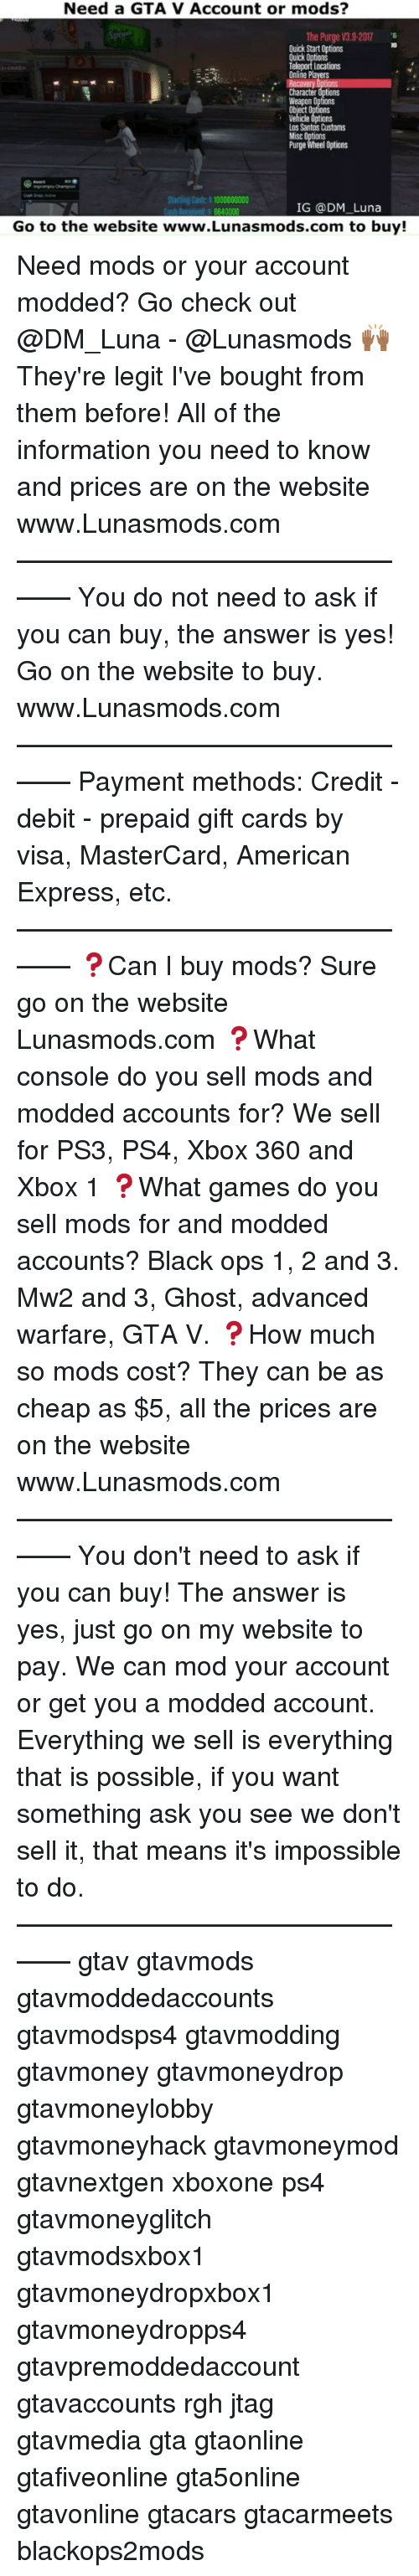 Need a GTA v Account or Mods? The Purge V39-2017 Quick Start Options